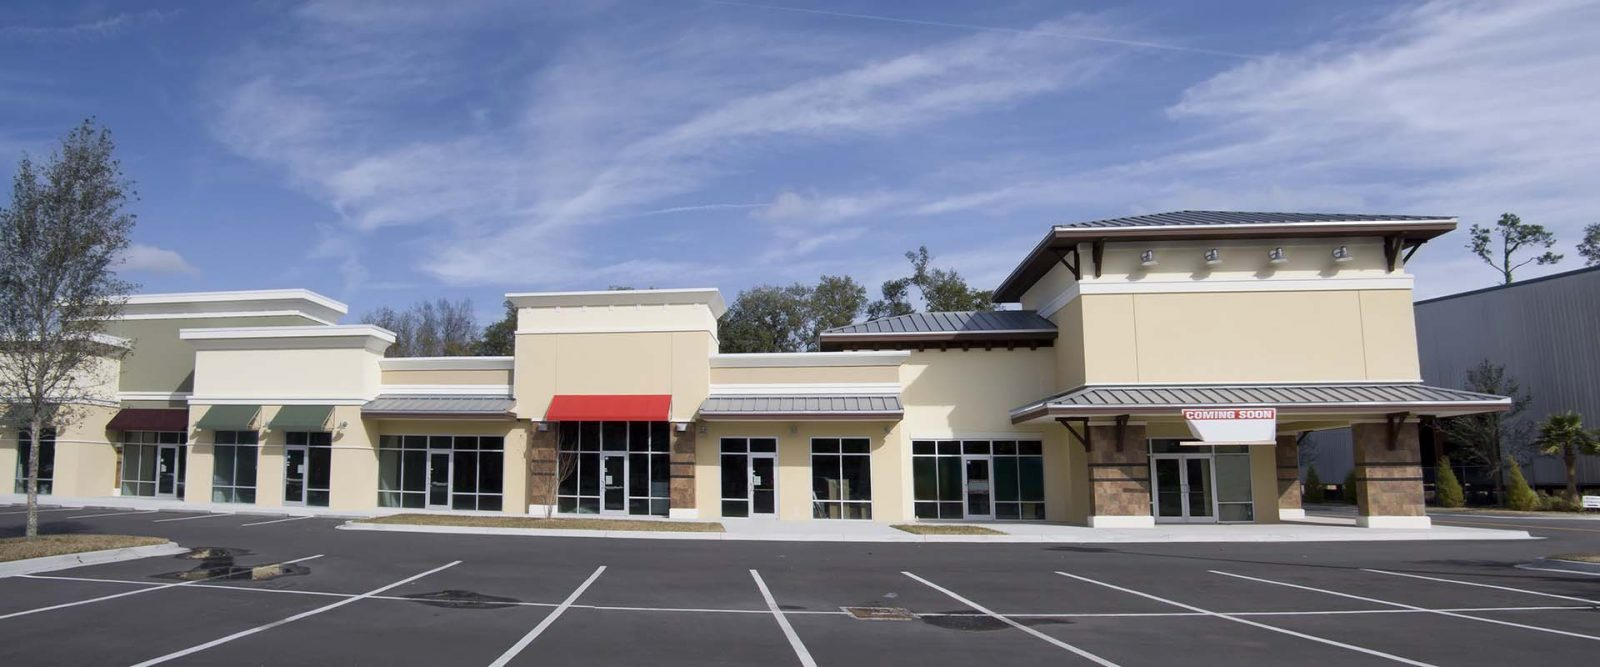 Retail Space for Lease by Faulkner Commercial Group